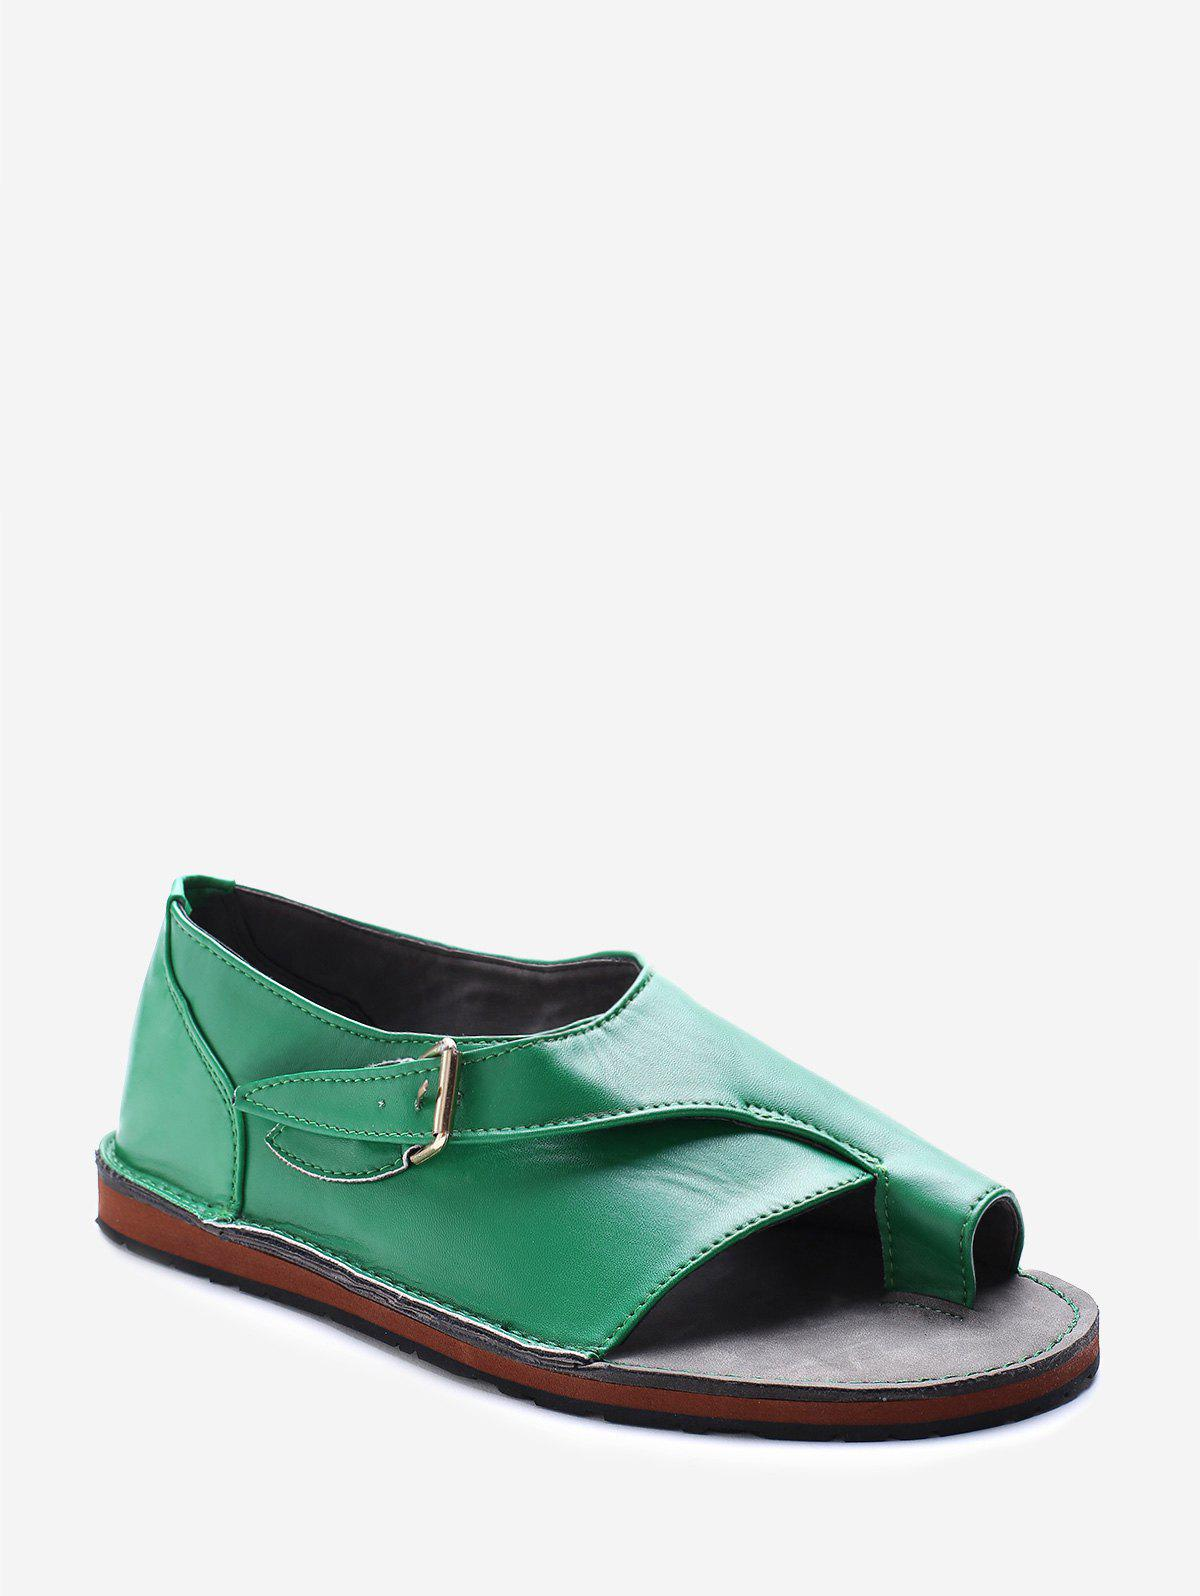 Flat Heel Buckle Strap Sandals - GREEN EU 42